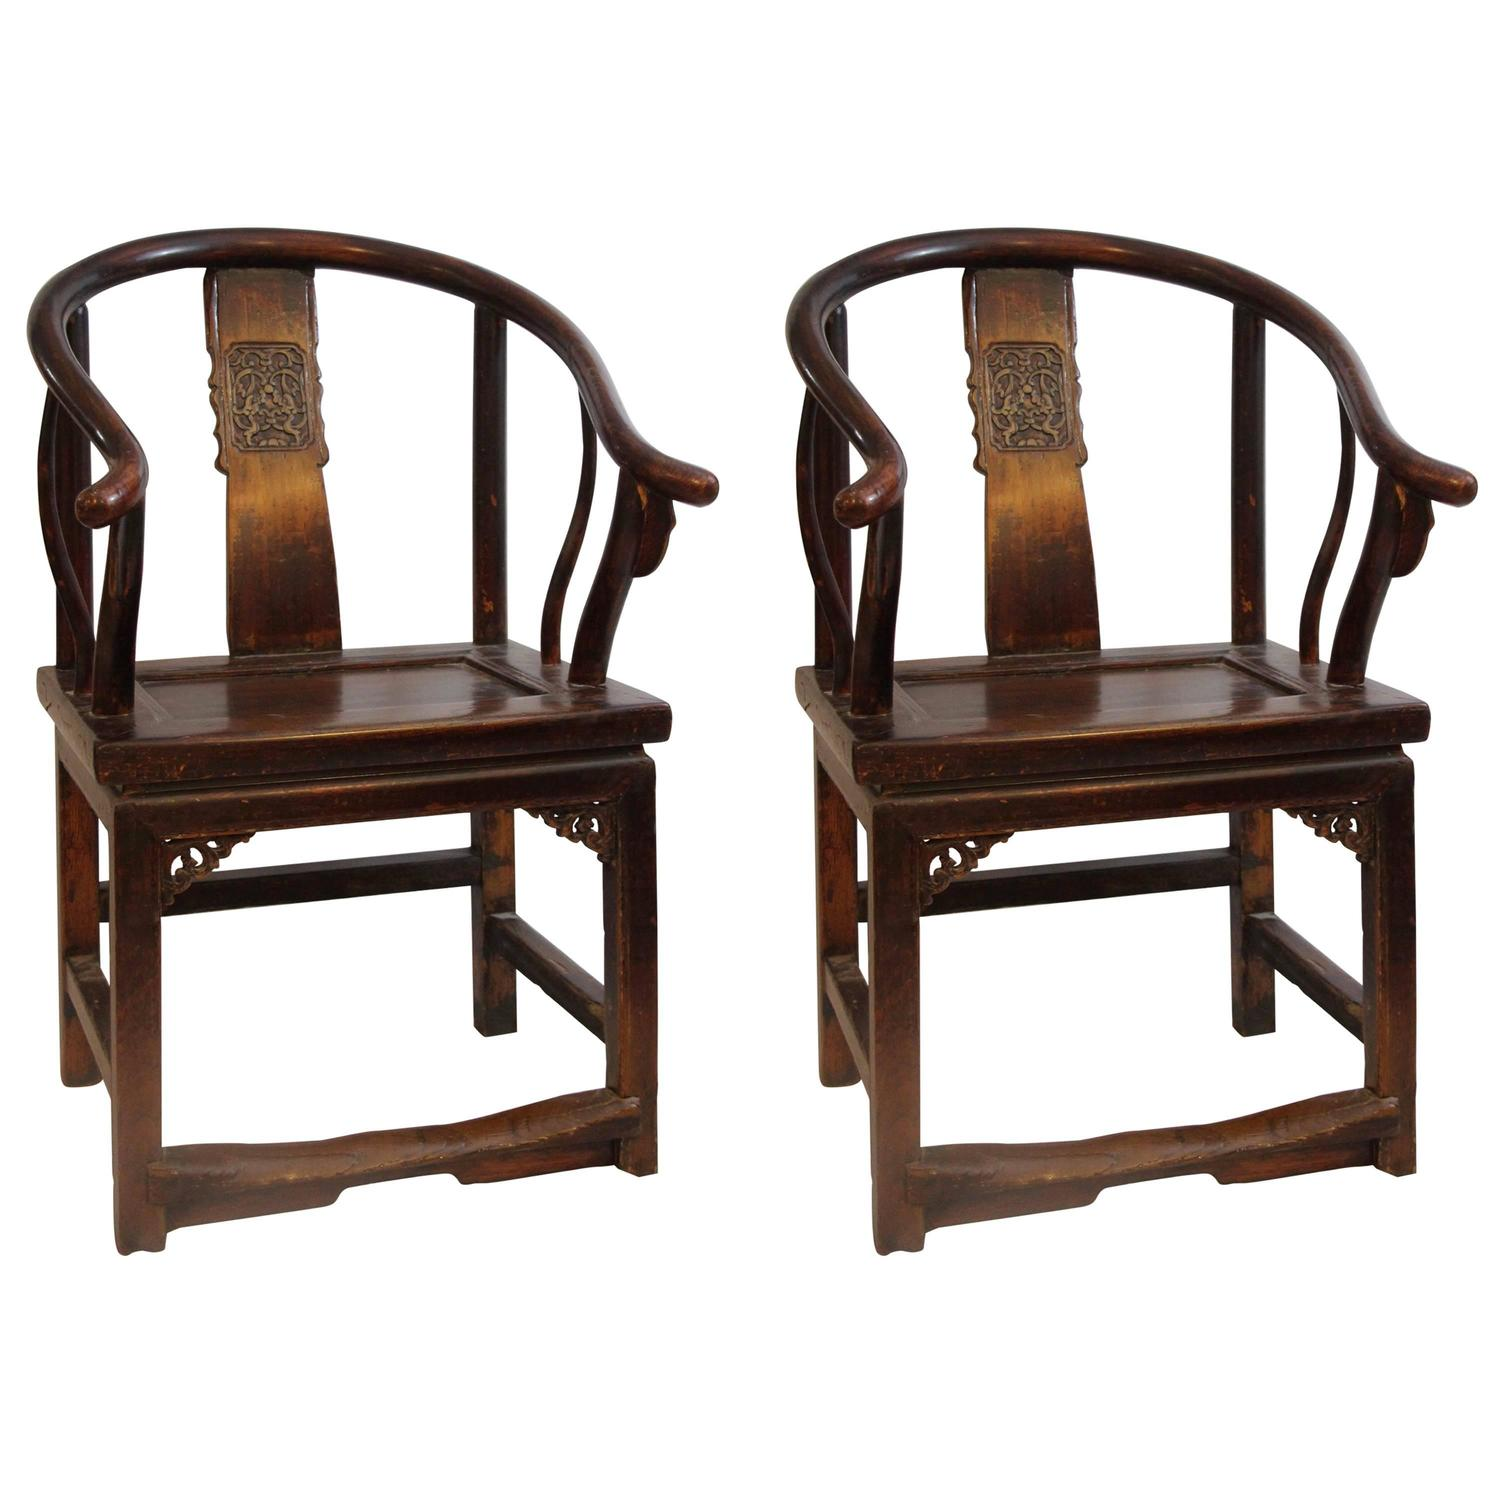 pair of horse shoe back armchairs china circa 1900 for